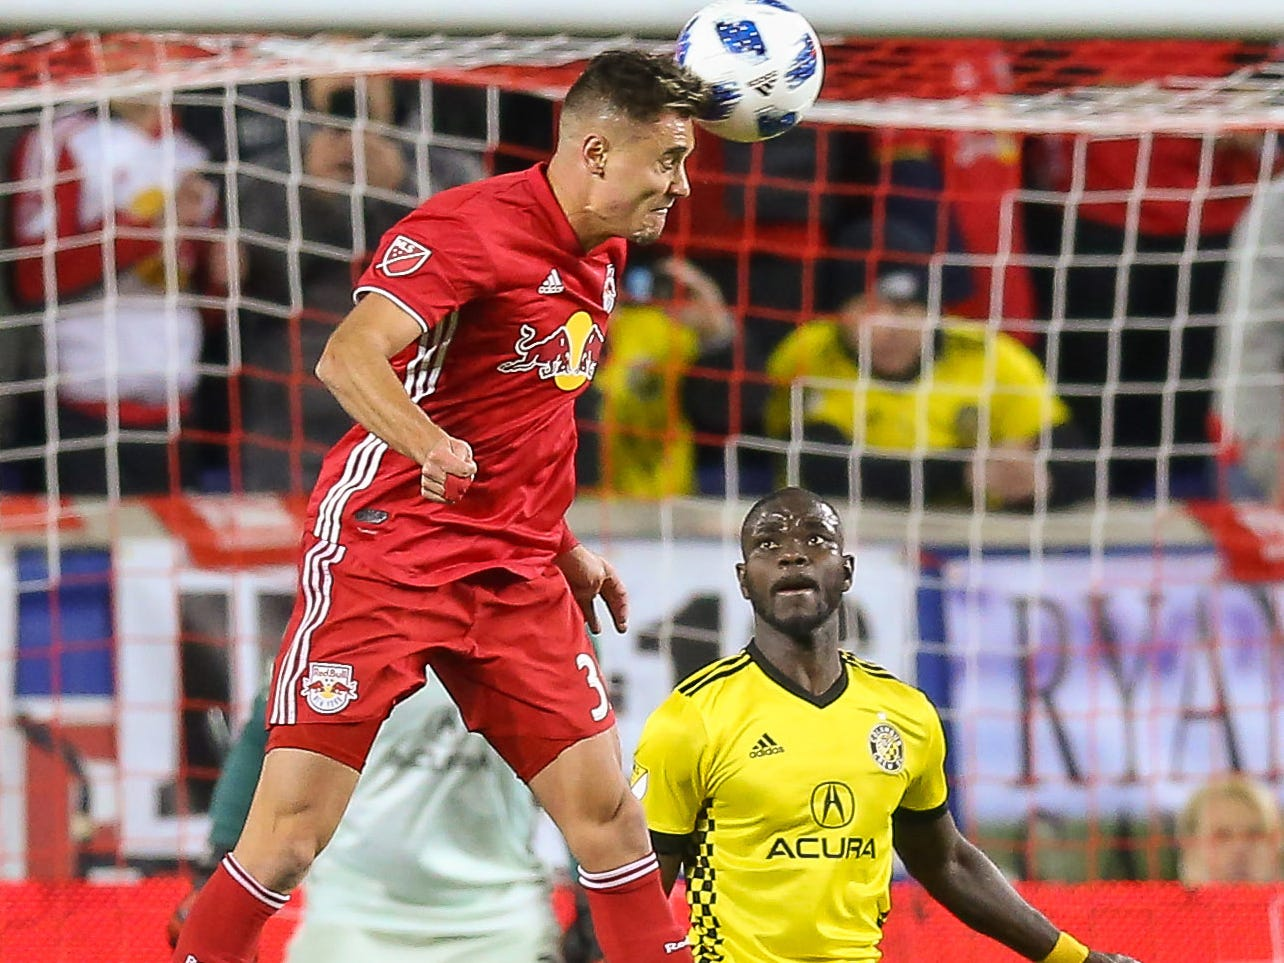 New York Red Bulls midfielder Aaron Long (33) heads the ball toward goal as Columbus Crew defender Jonathan Mensah defends during the first half in the Eastern Conference semifinal at Red Bull Arena. NYRB won the game, 3-0, to advance to the Eastern Conference final.